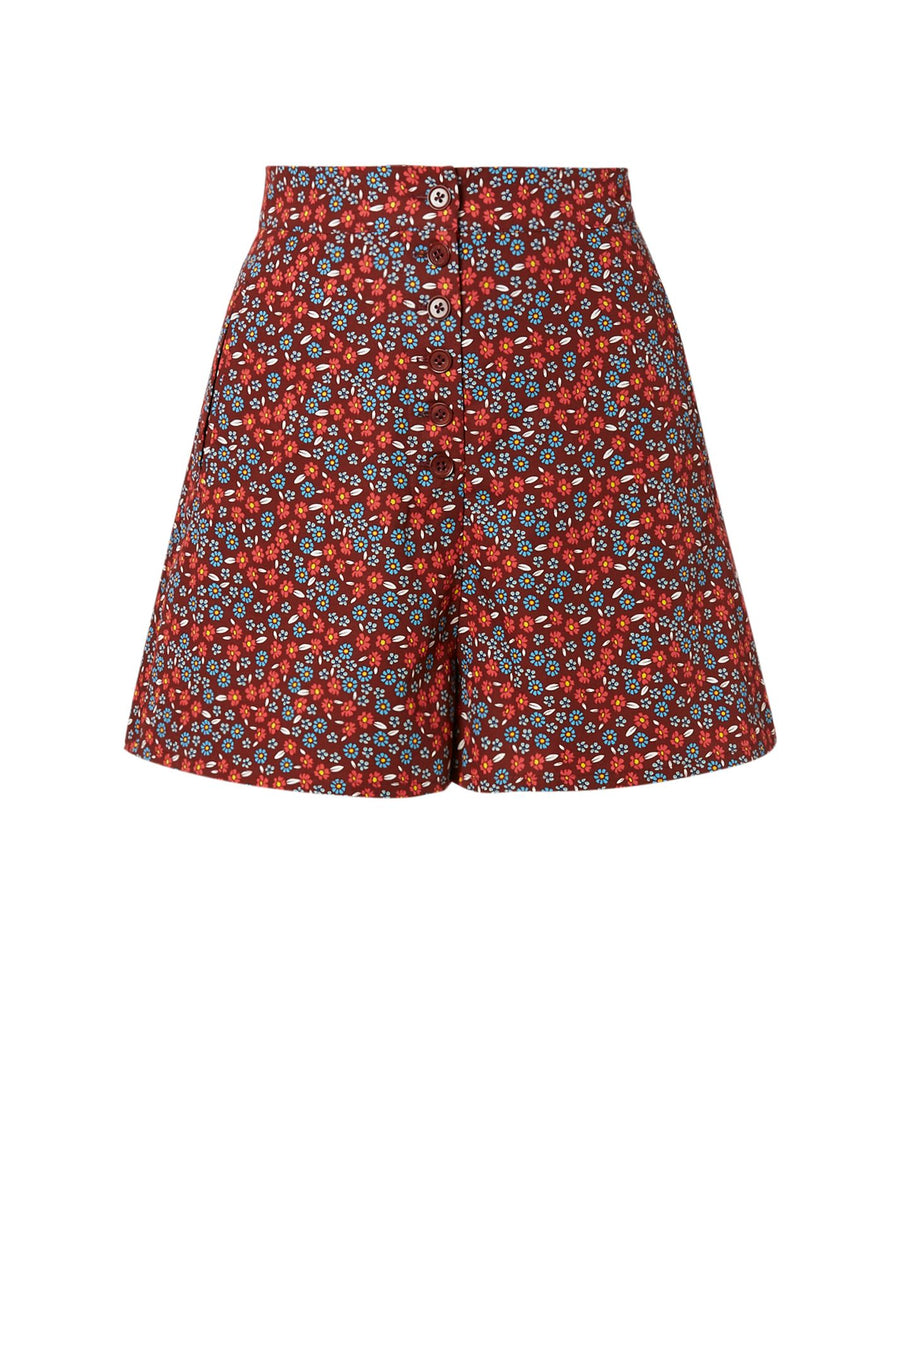 COTTON FLORAL high waist short, features button down front with pockets, color ruby